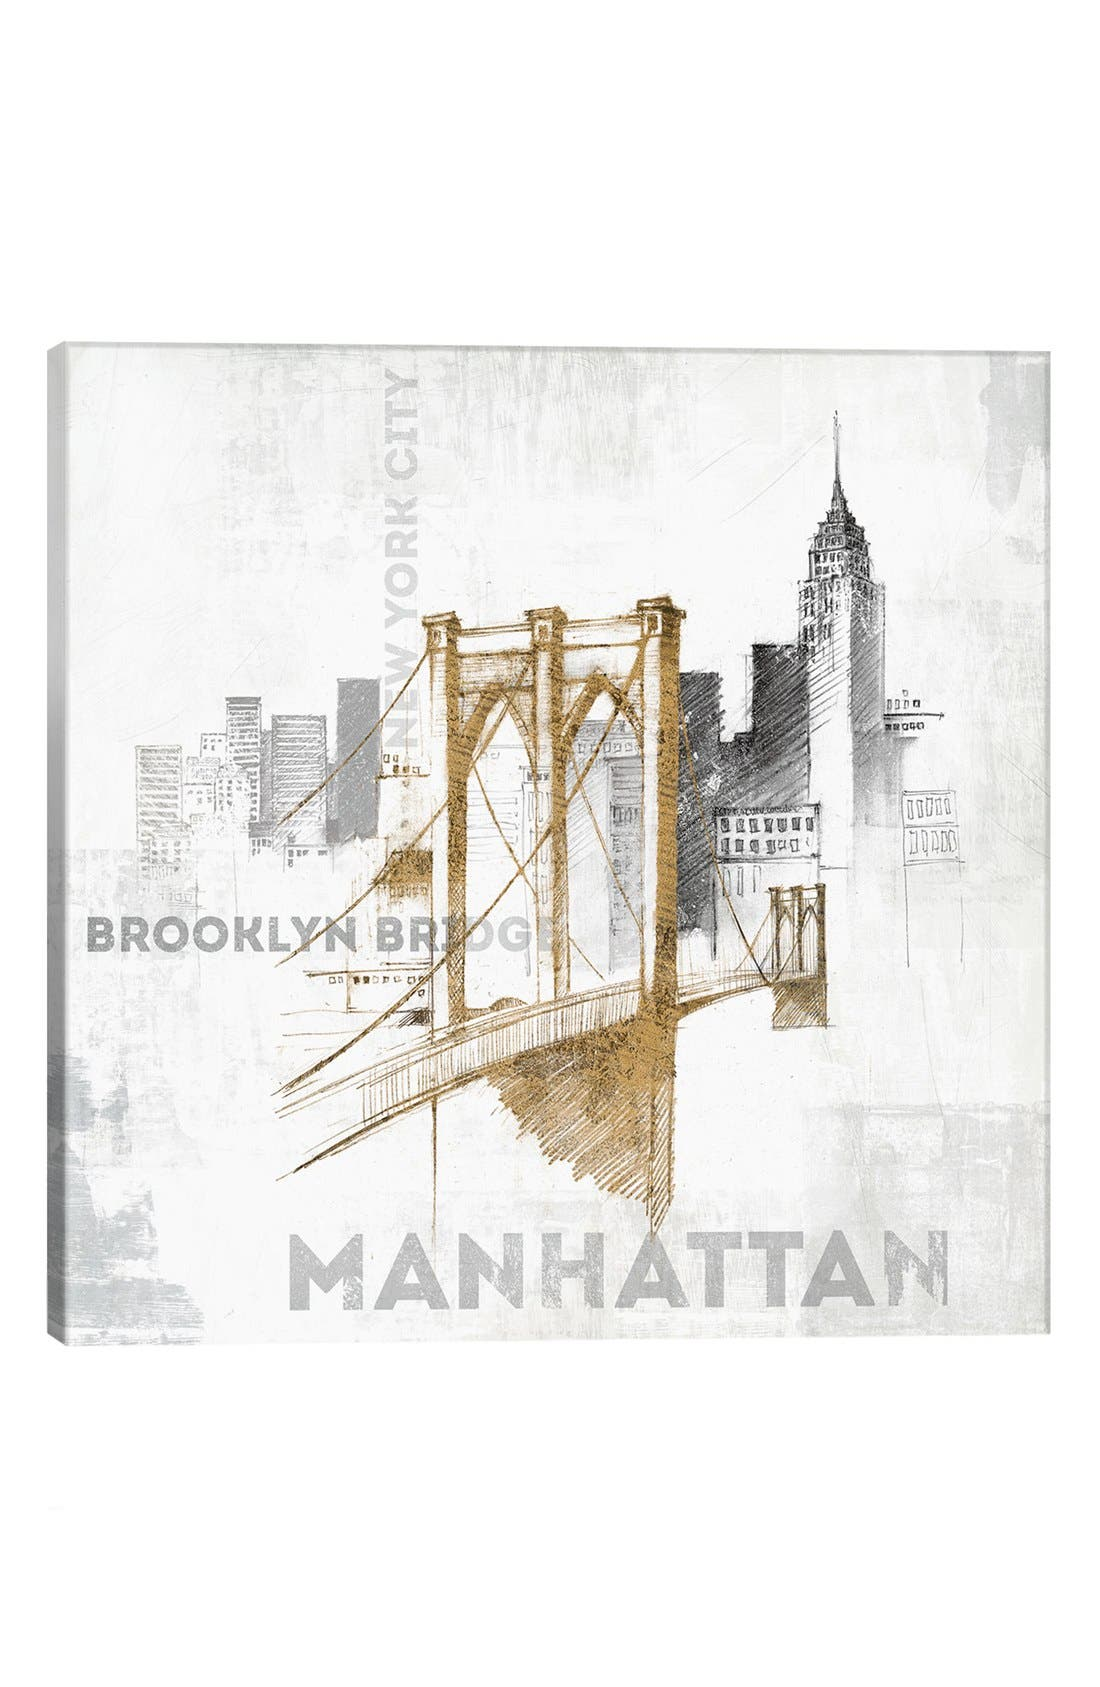 Alternate Image 1 Selected - iCanvas 'Brooklyn Bridge' Giclée Print Canvas Art